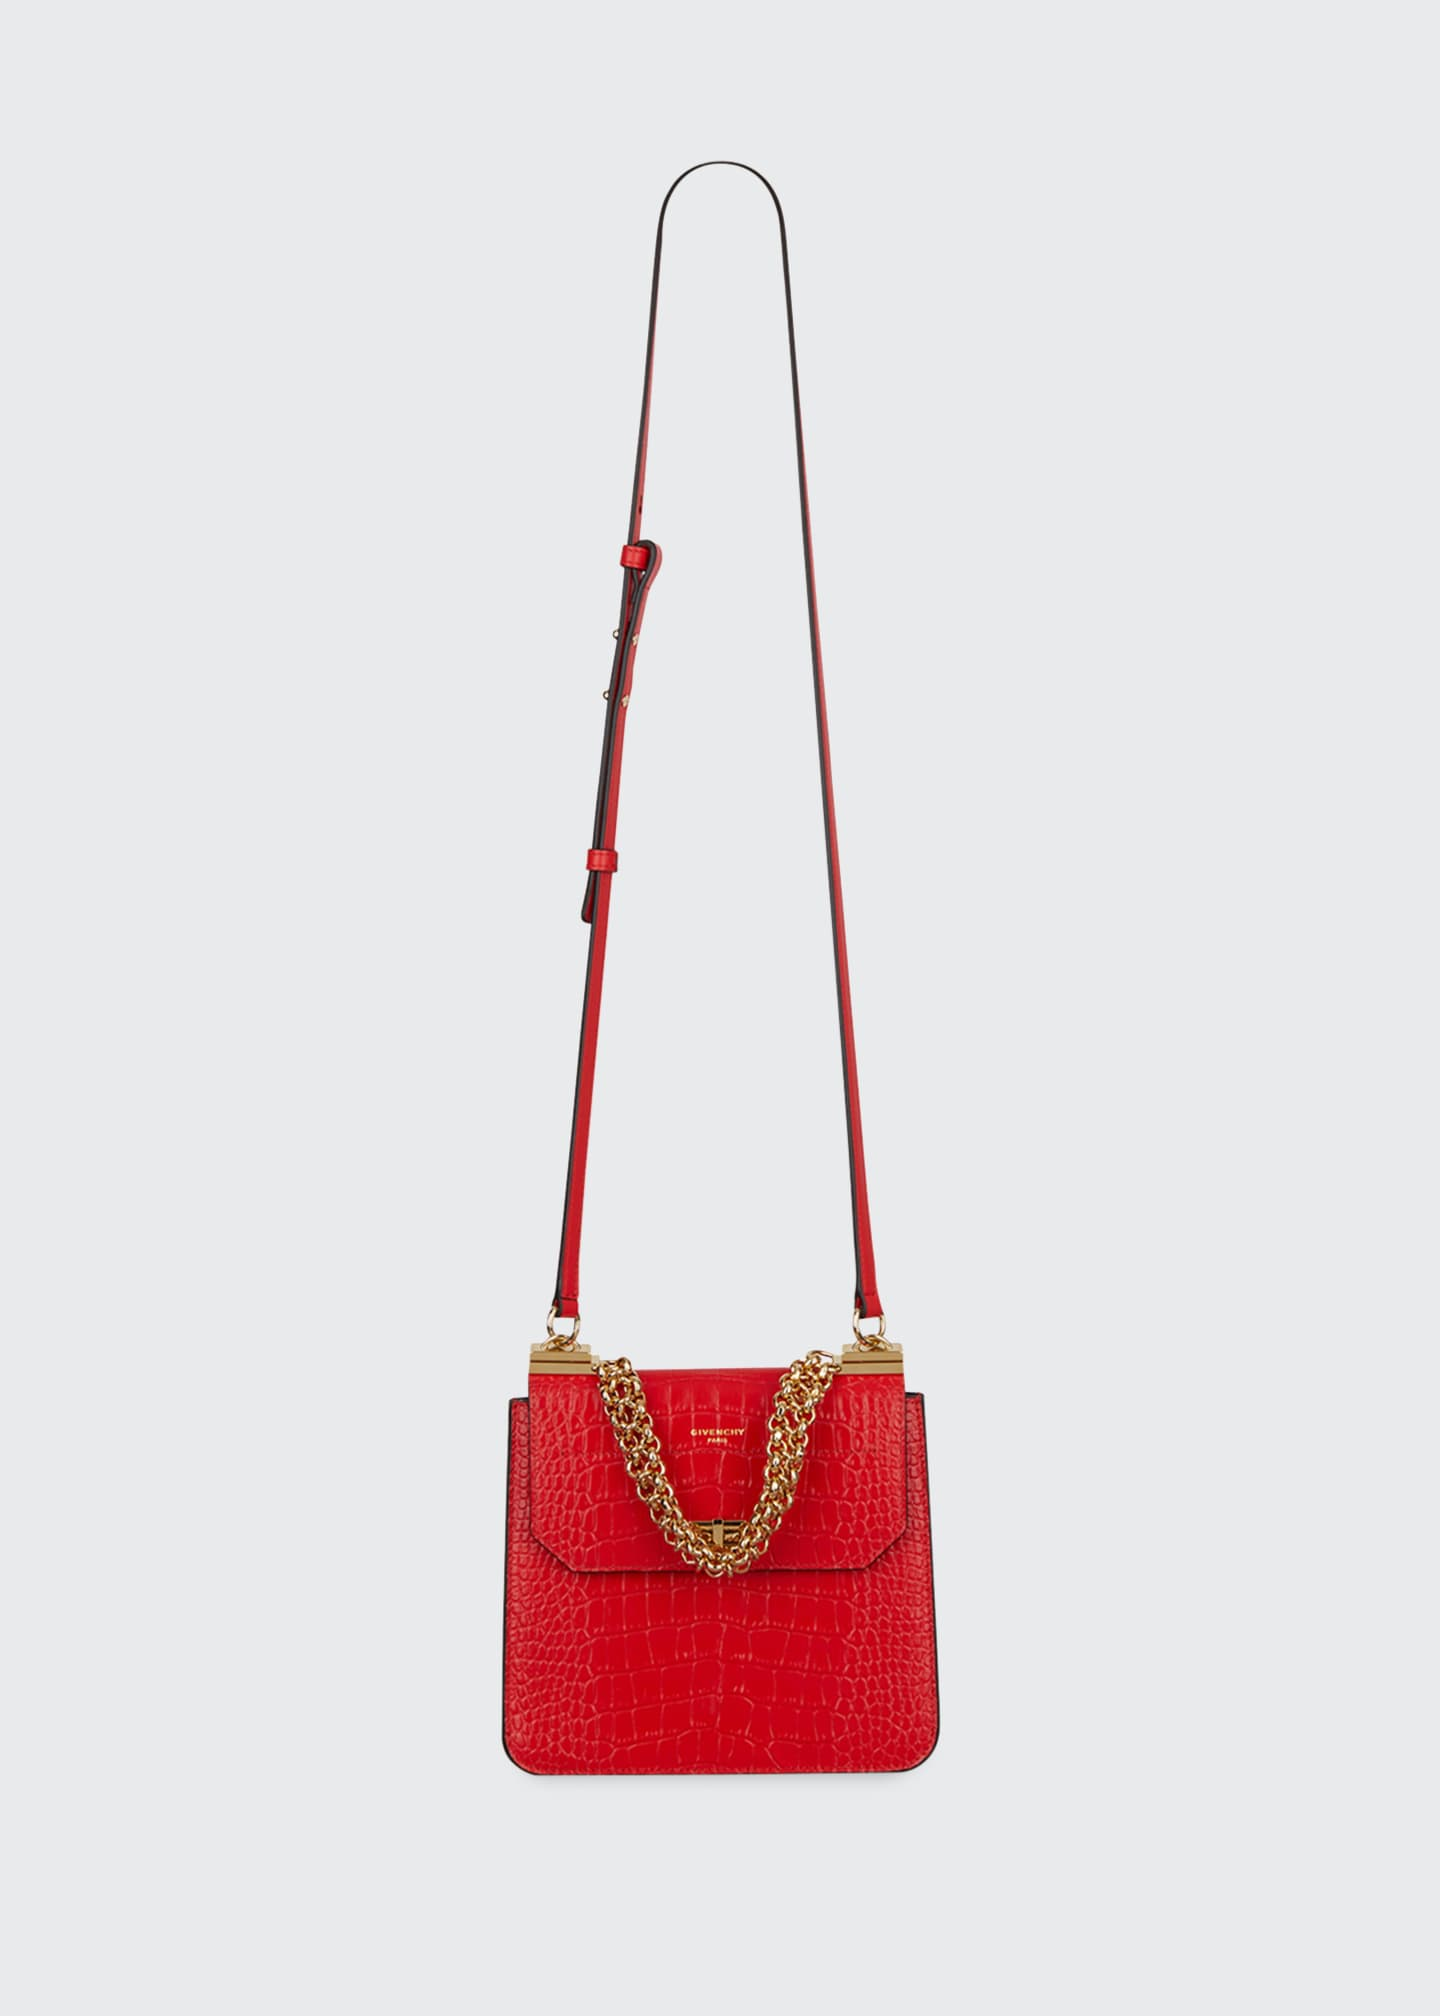 Givenchy Catena Medium Crocodile Shoulder Bag